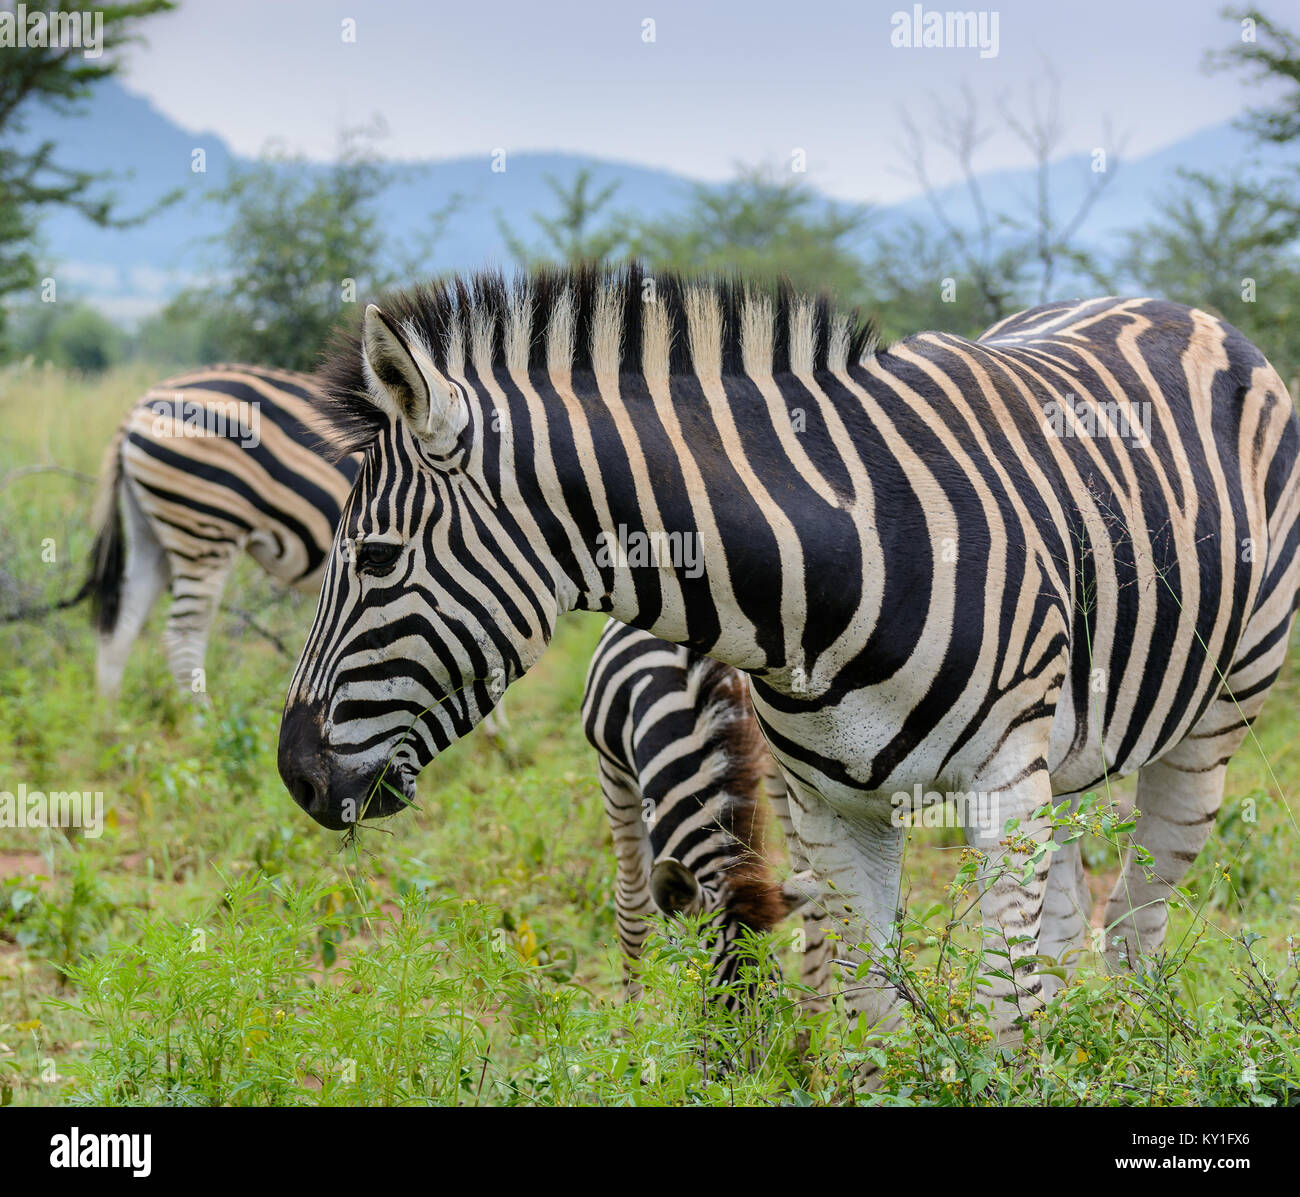 Outdoor color animal portrait of a cute sweet lovely single zebra in front of other zebras with green sunny background - Stock Image